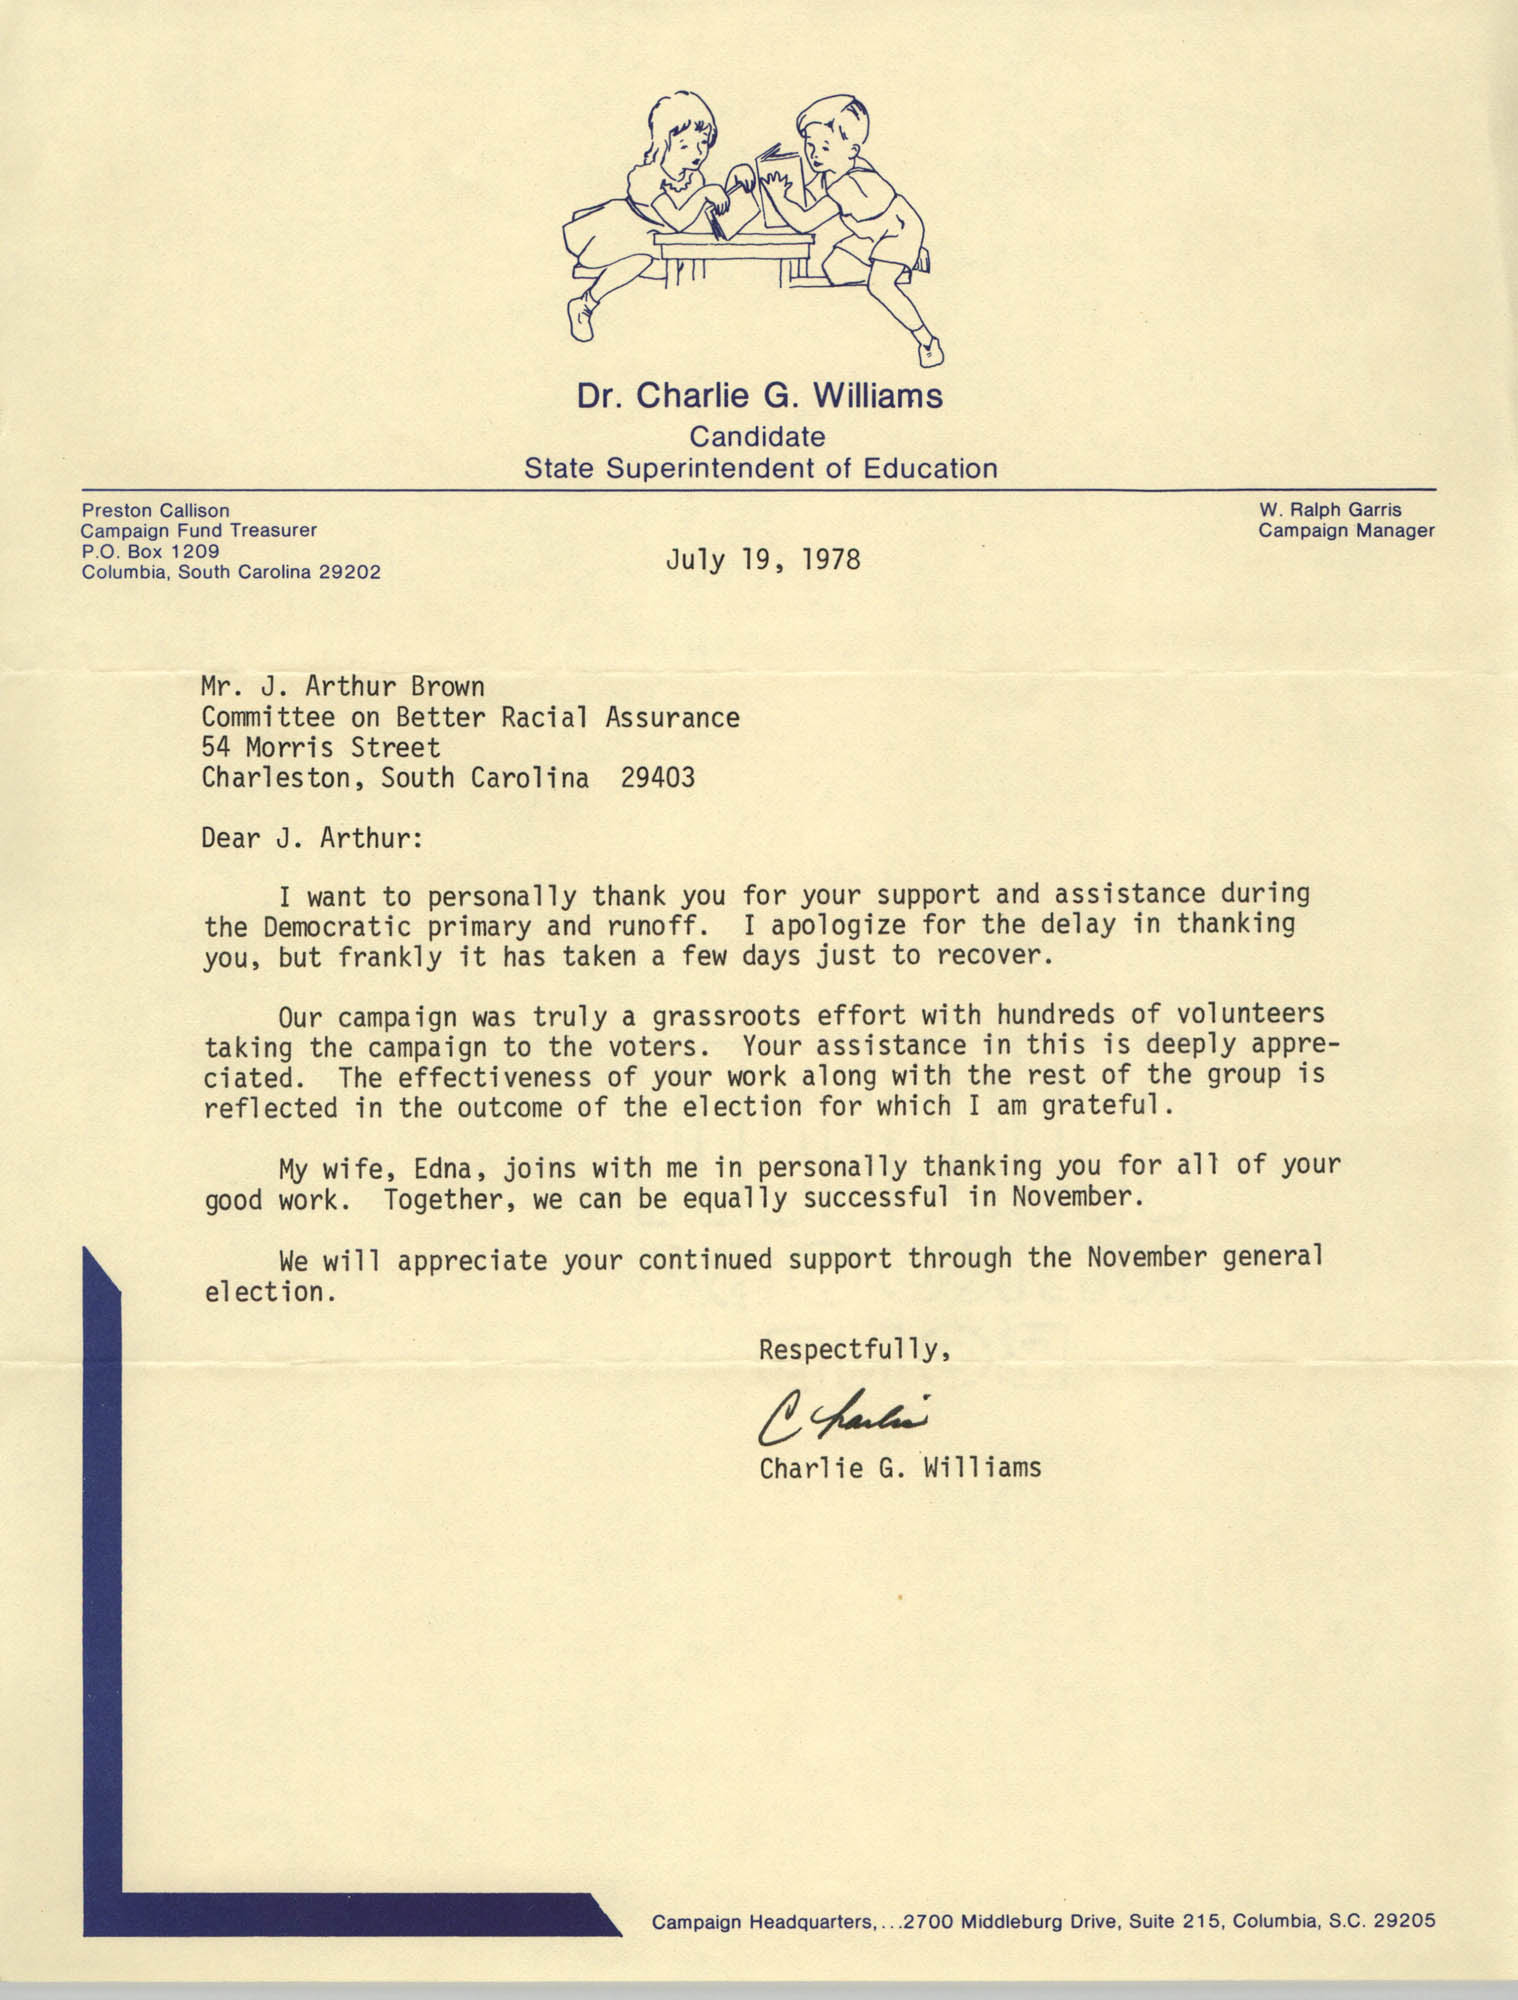 Letter from Charlie G. Williams to J. Arthur Brown, July 19, 1978